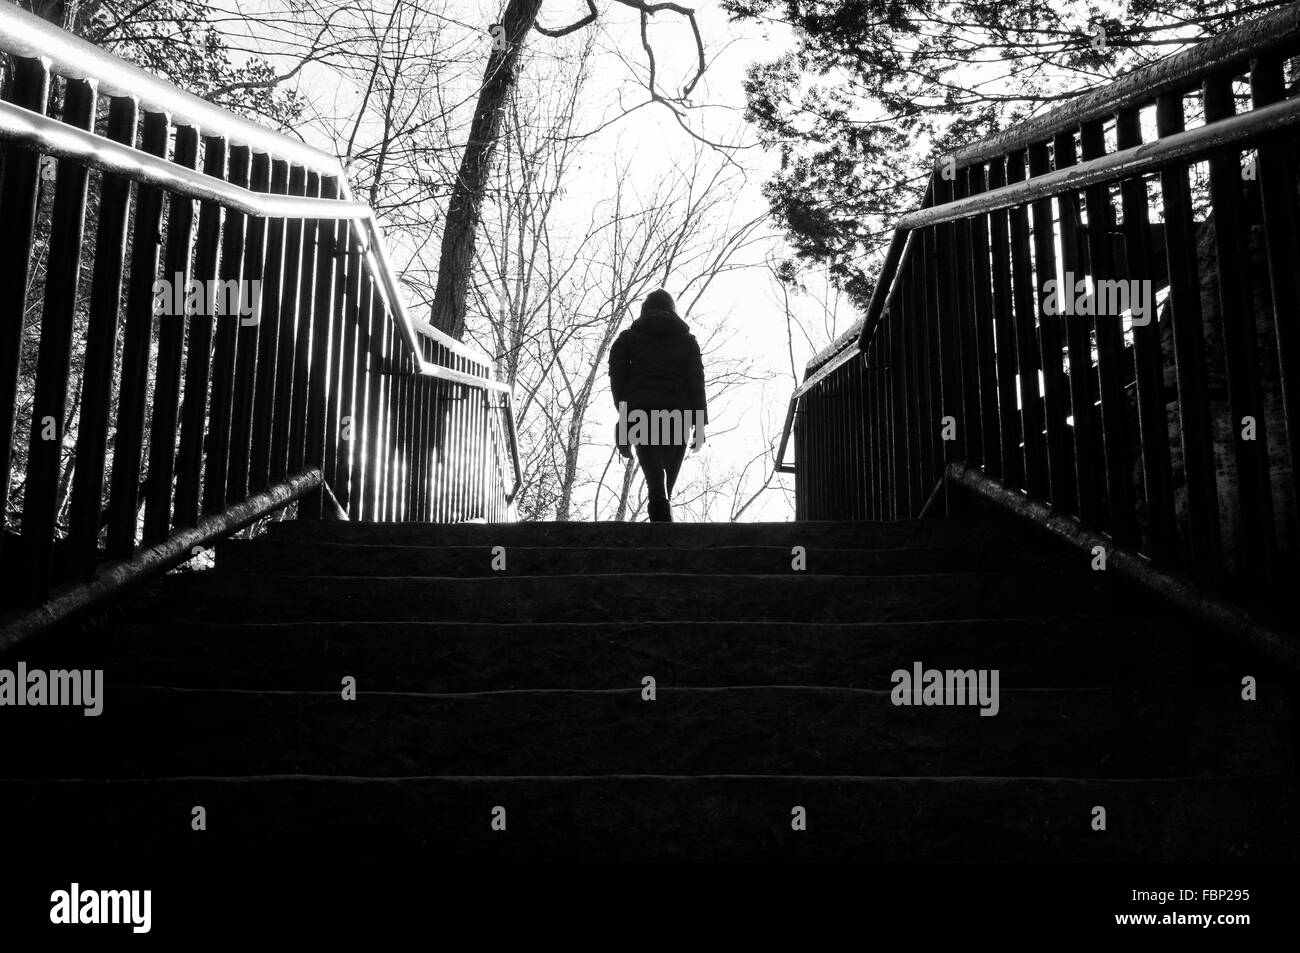 Silhouette Person Walking On Staircase In Park Stock Photo